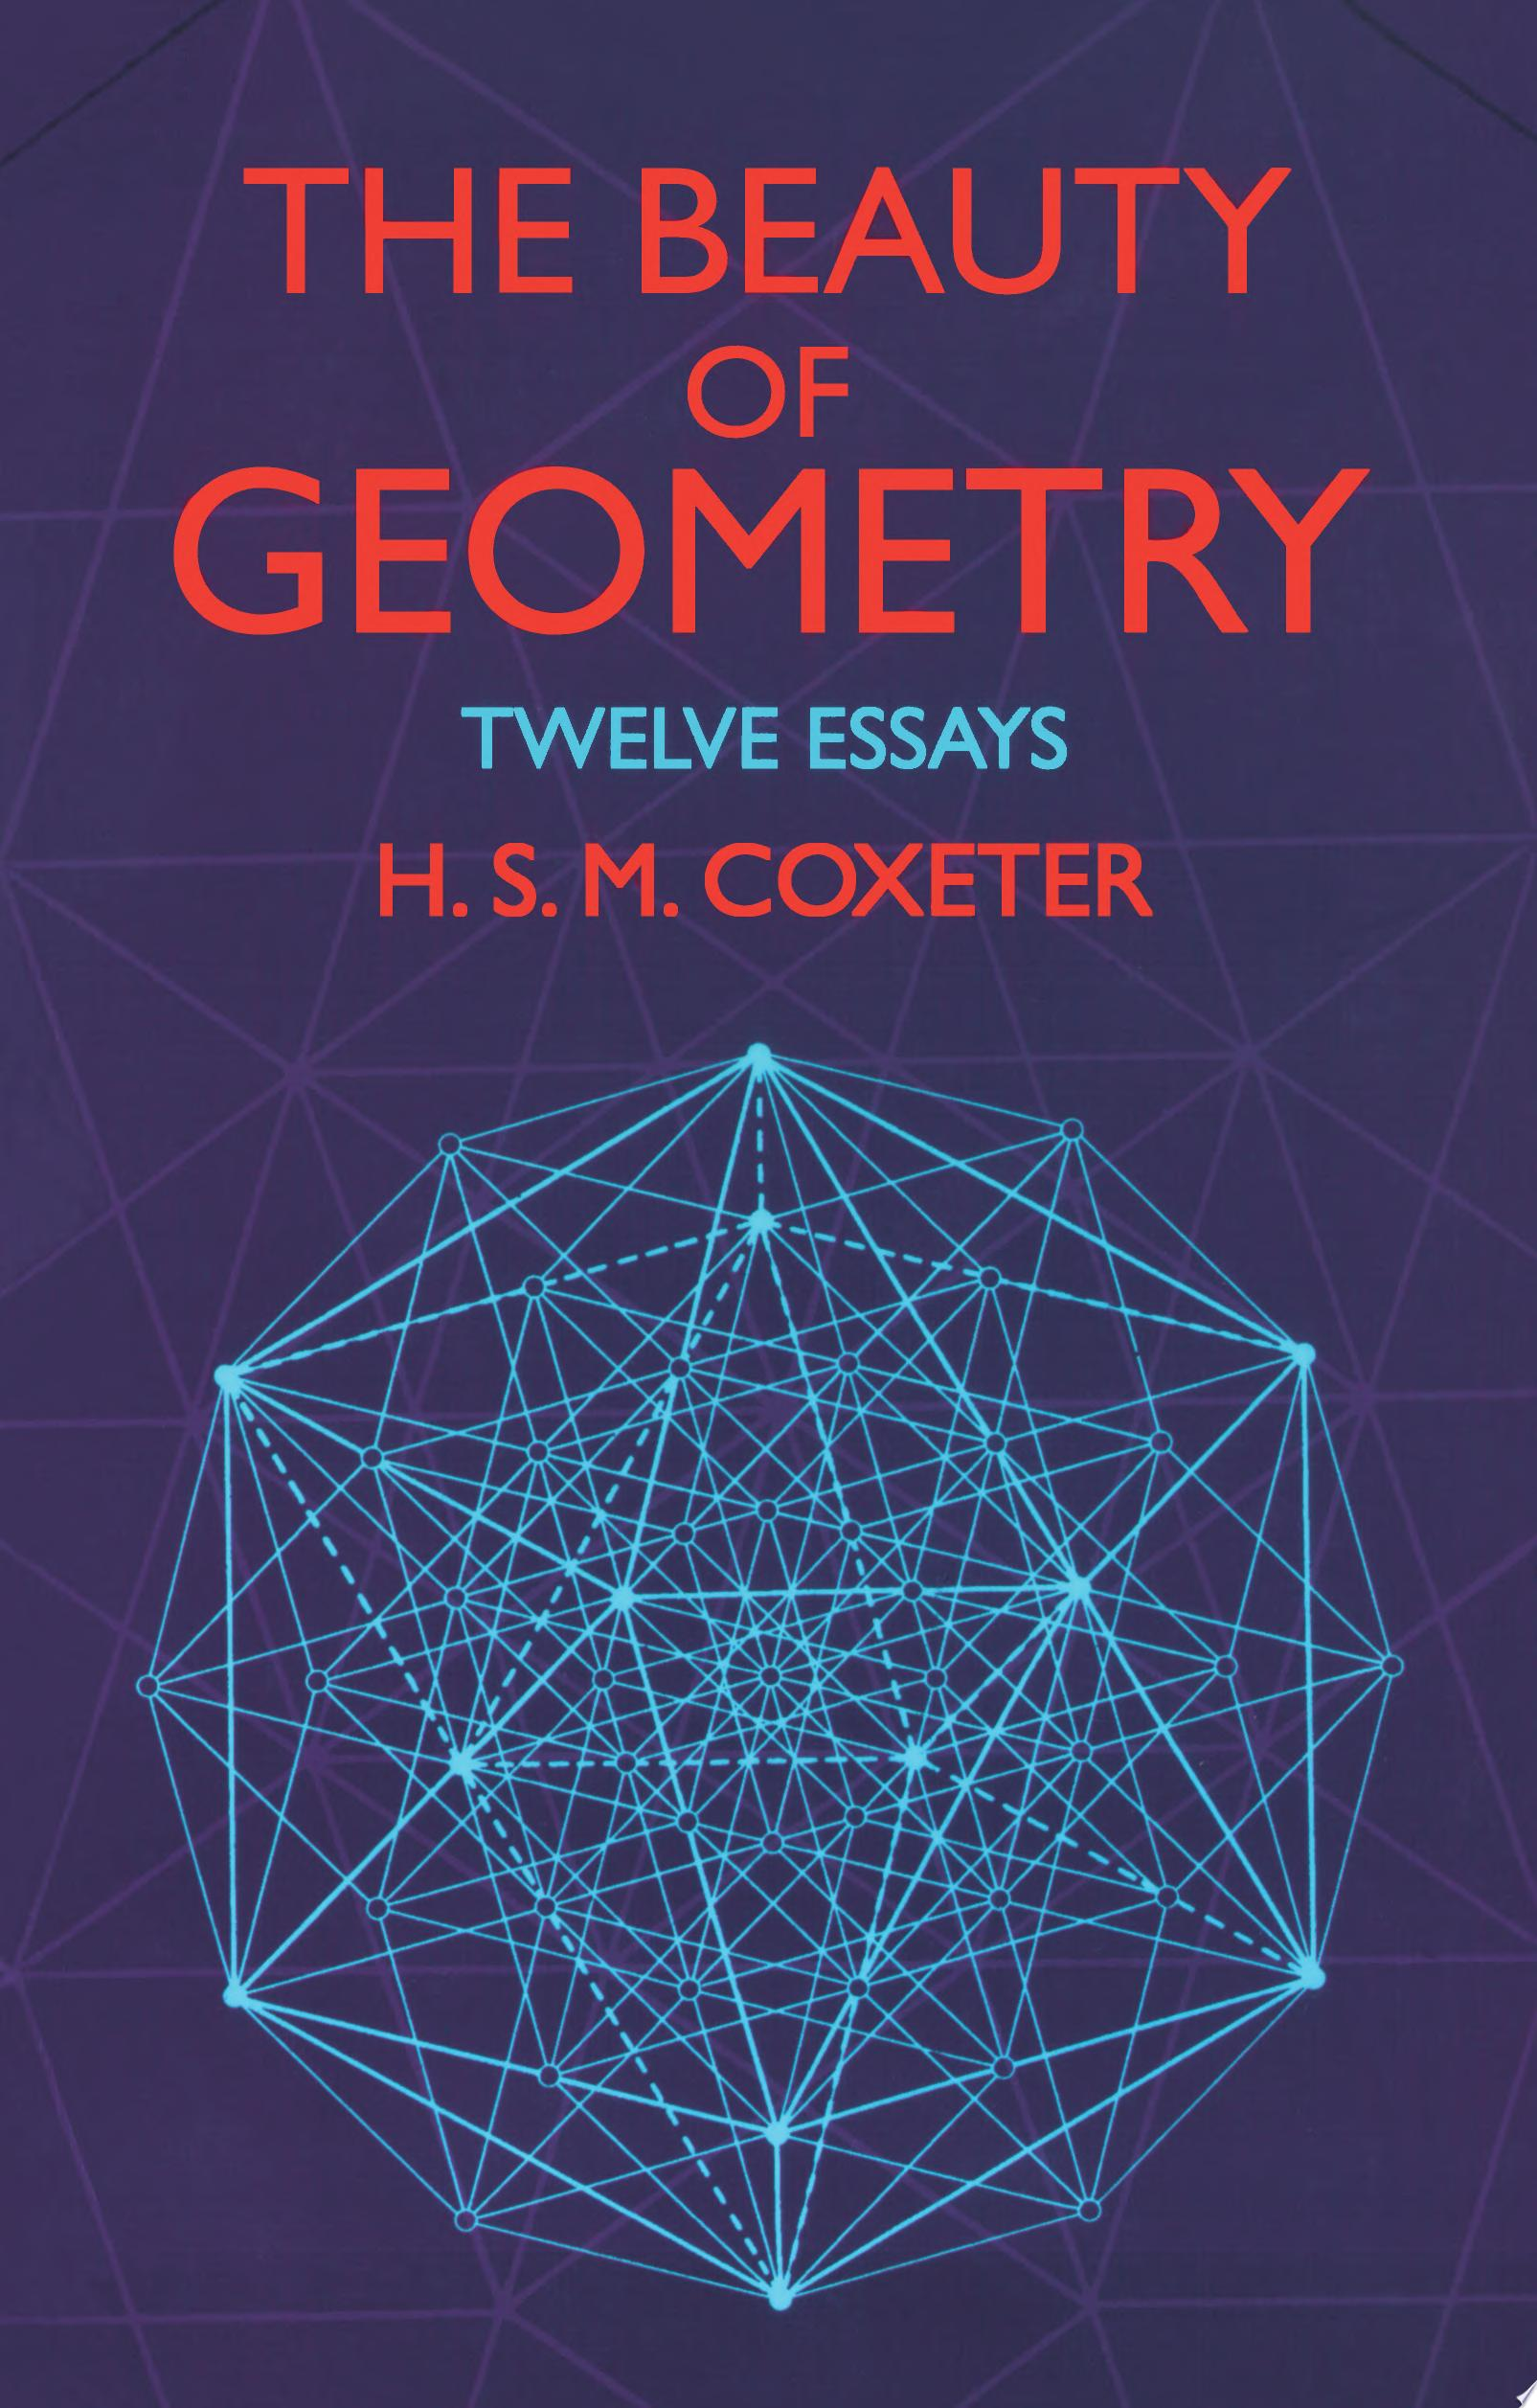 The Beauty of Geometry